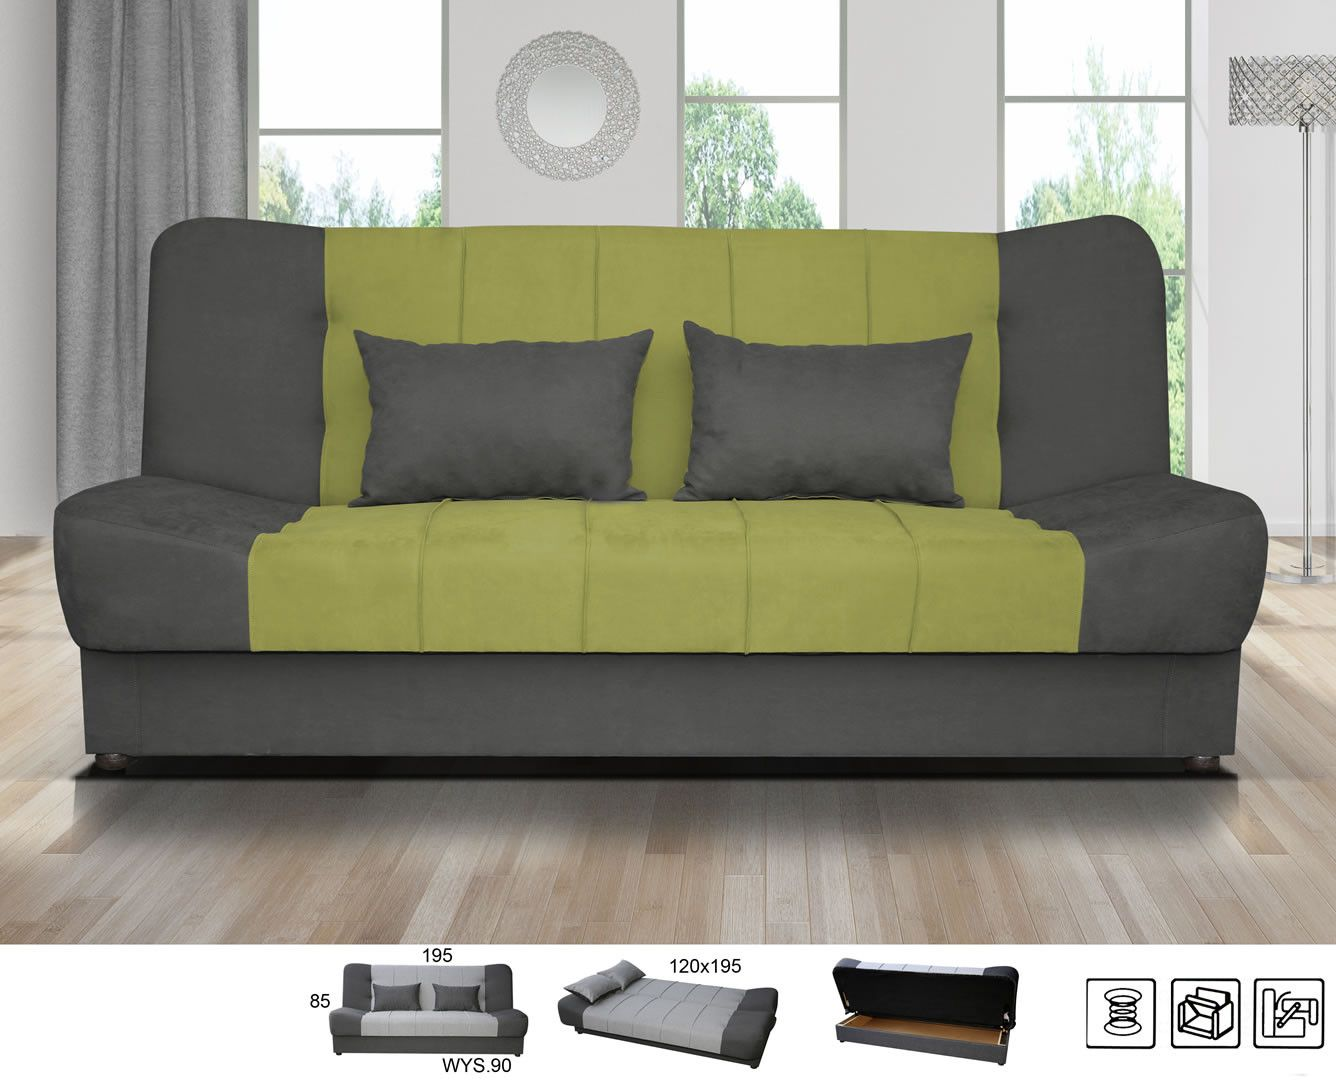 canap design pas cher canap clic clac olathe gris et vert trocity. Black Bedroom Furniture Sets. Home Design Ideas